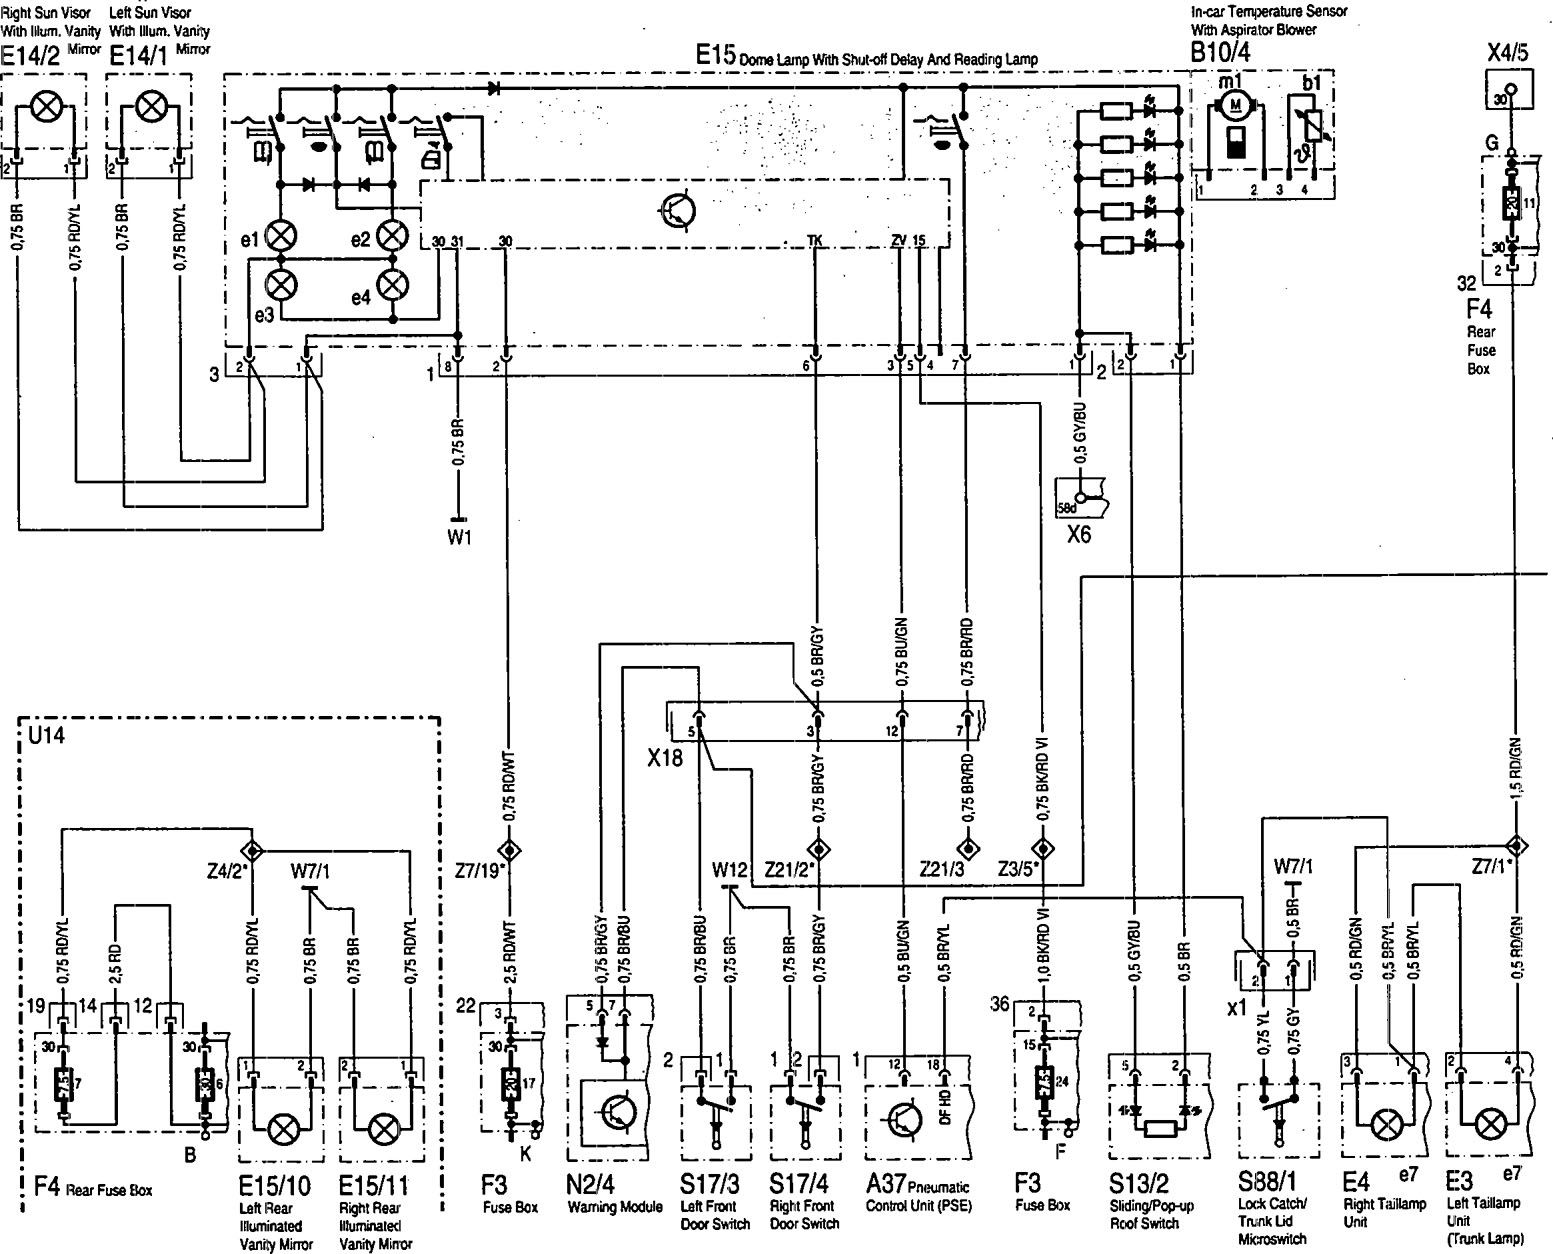 A Diagram For Wiring The Lights In Show 1992 Corvette